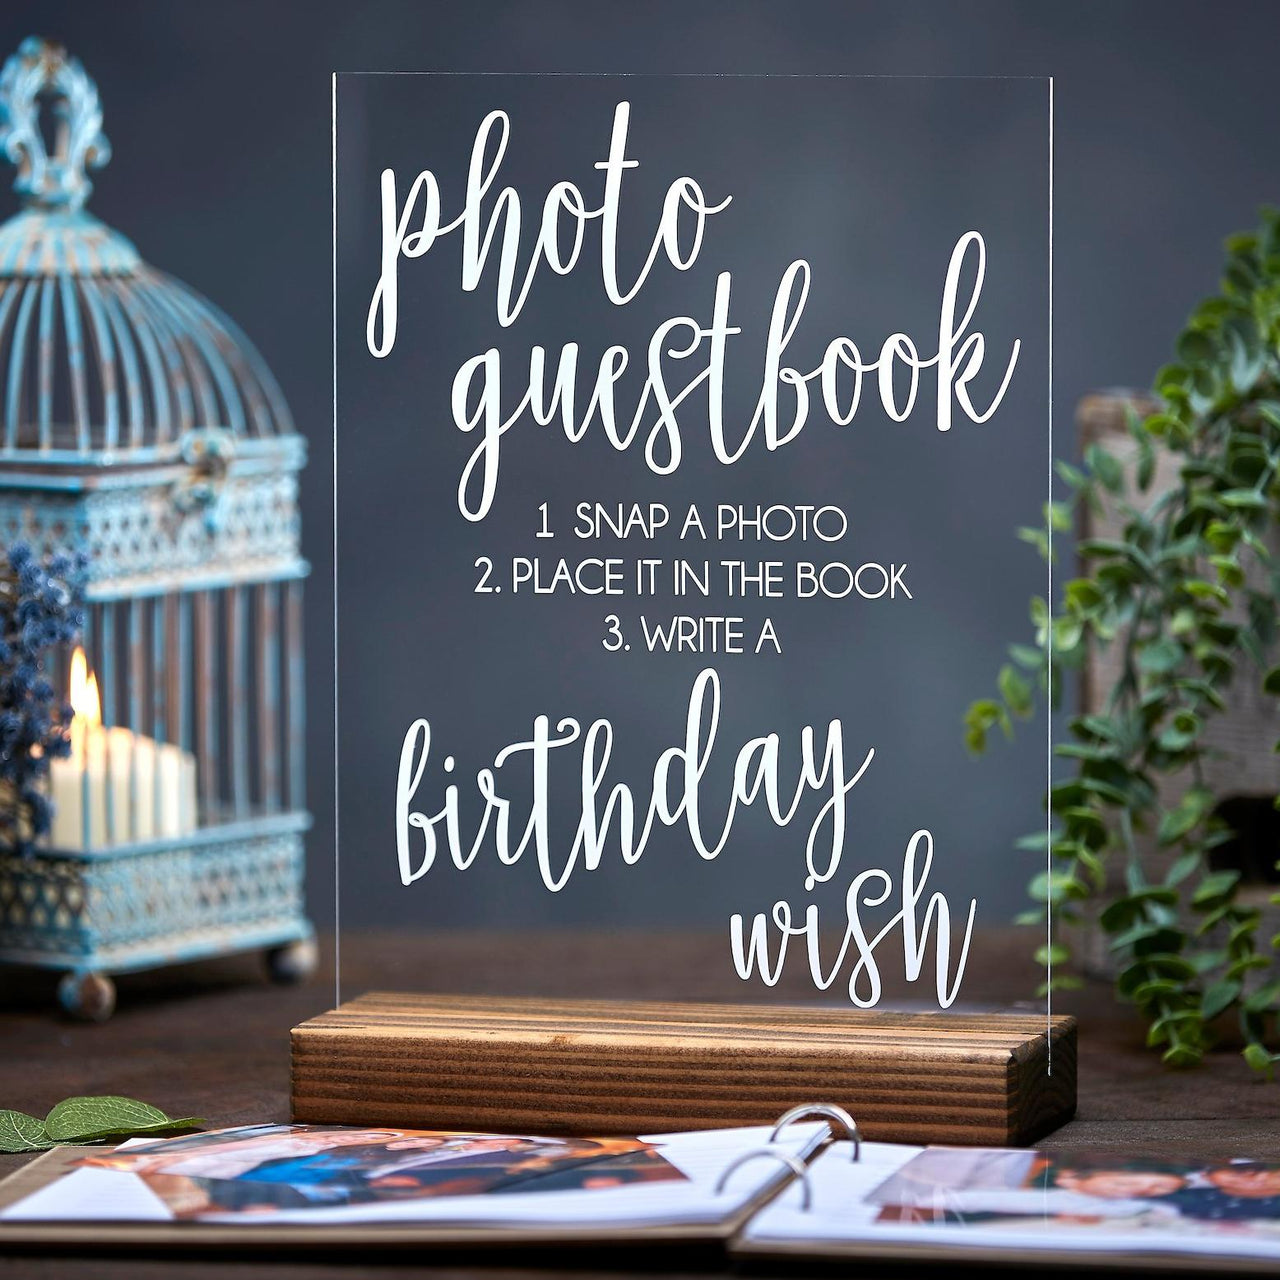 Acrylic Photo Guestbook Sign For Birthdays - Rich Design Co